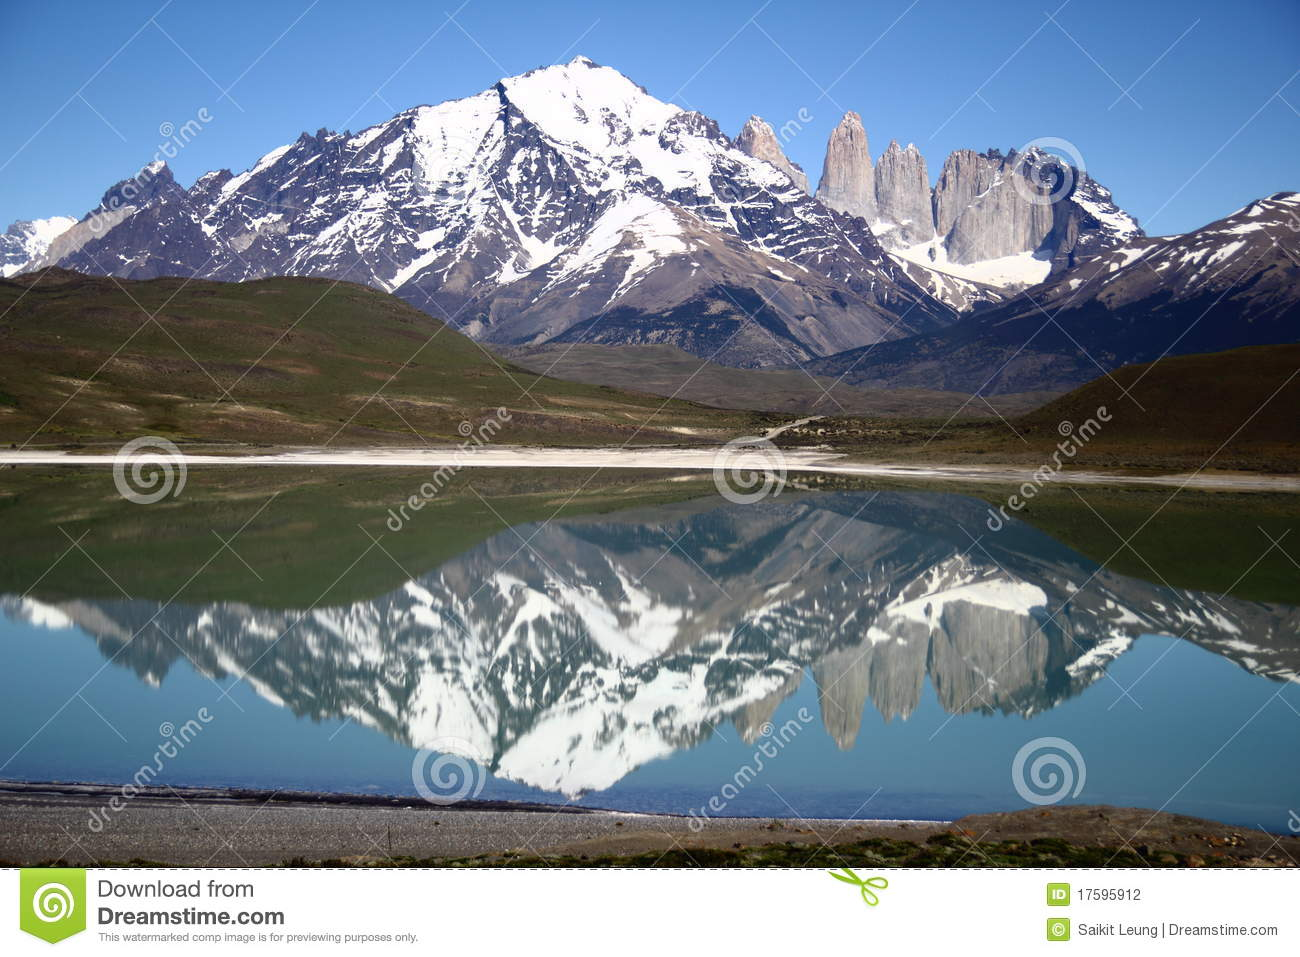 Nationalpark Torresdel Paine, Patagonia, Chile